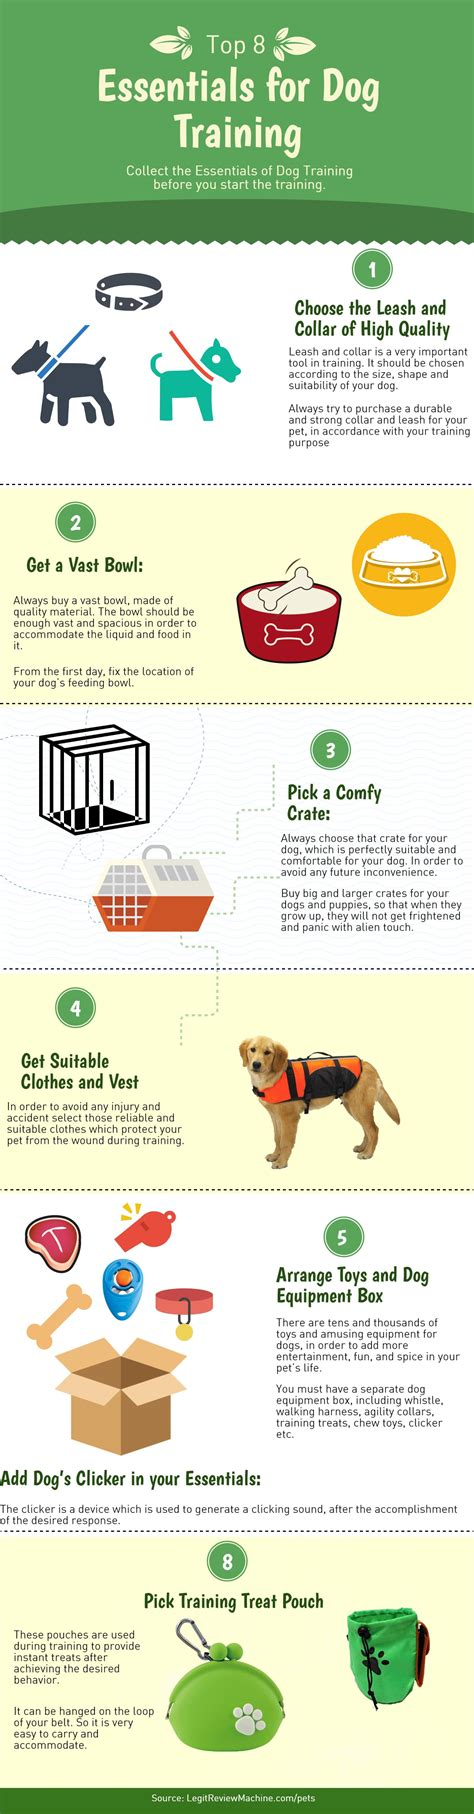 how do guide dogs get trained 8 must essentials for the a comprehensive infographic